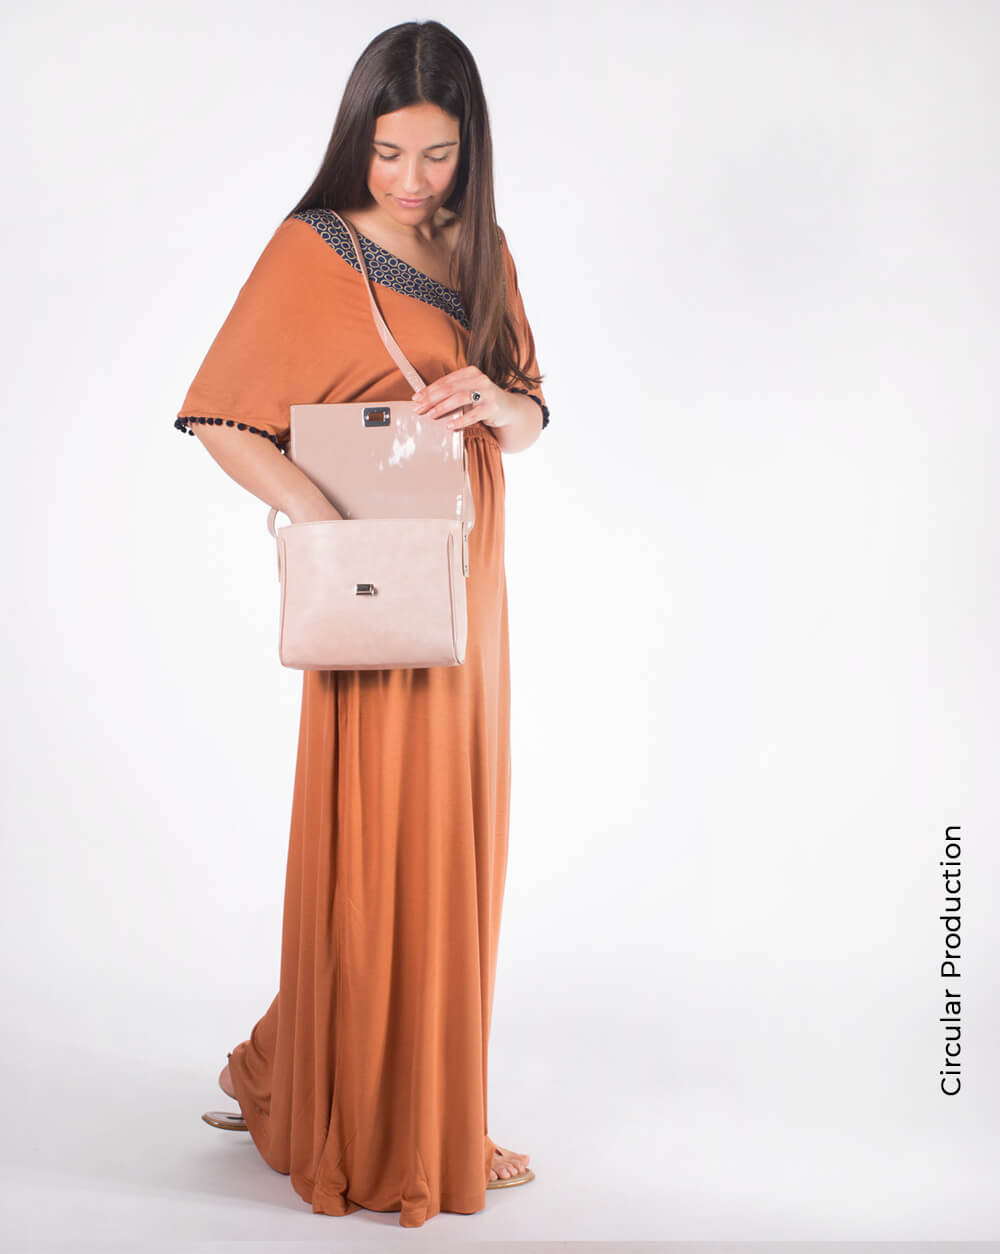 Long Dress Vestido Comprido Terracotta